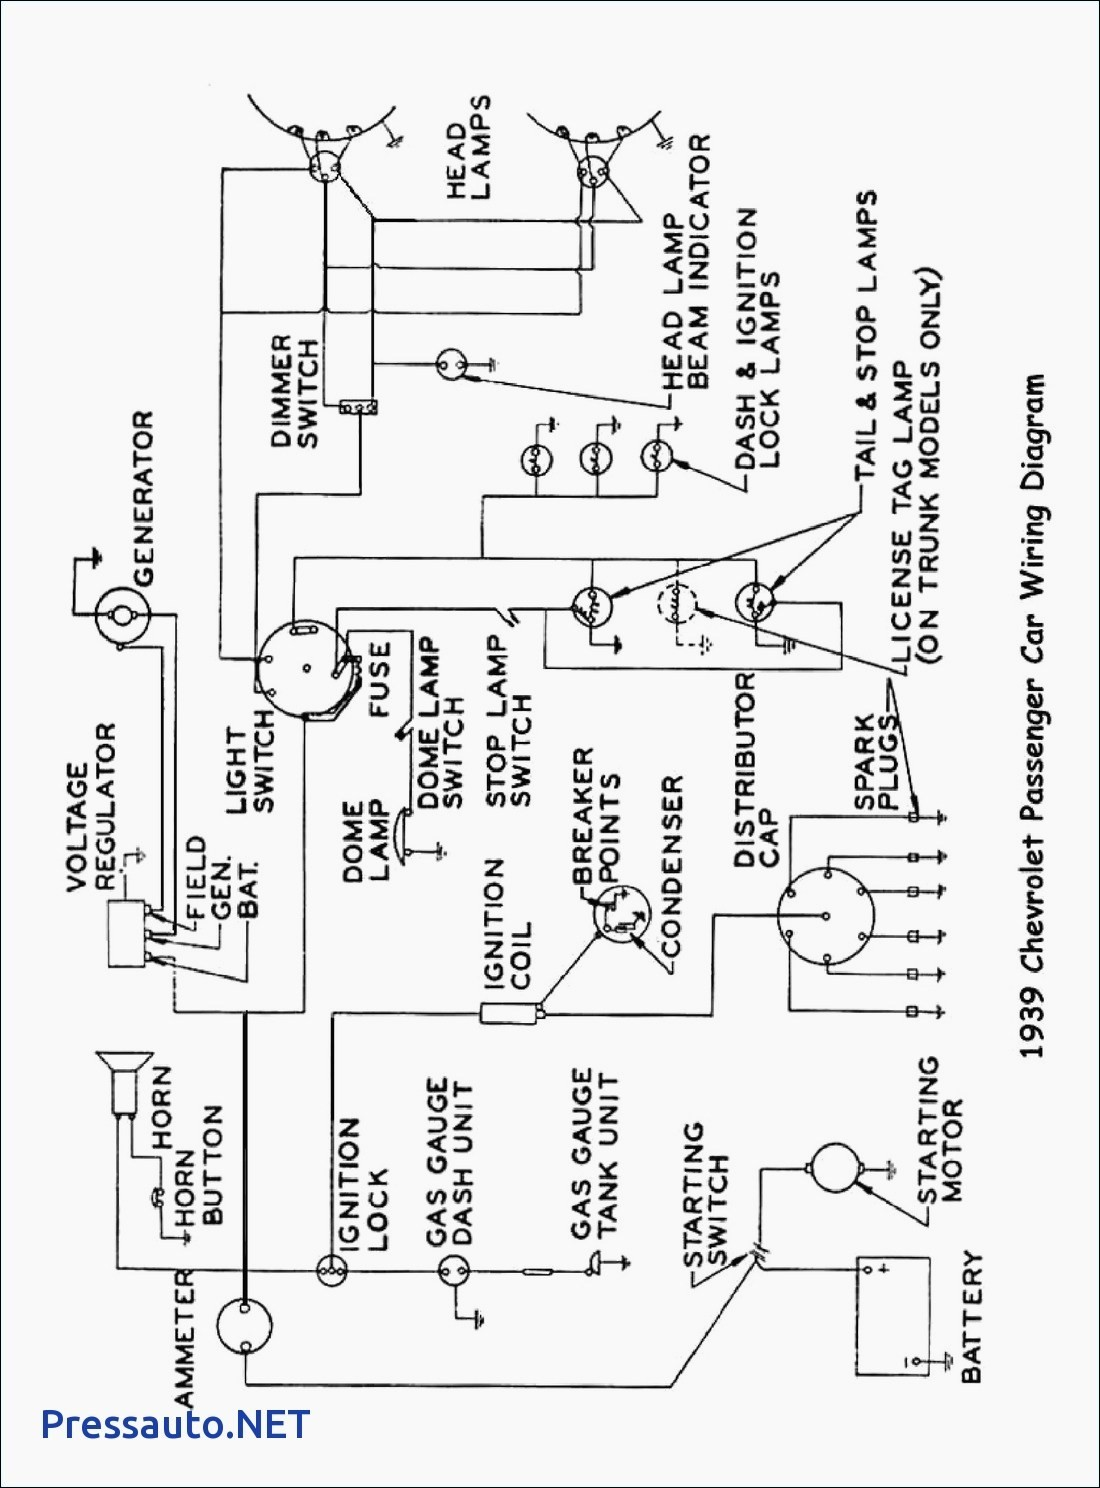 John Deere 314 Wiring Schematic Free Diagram For You 265 Ignition Switch Diagrams Scematic Rh 88 Jessicadonath De